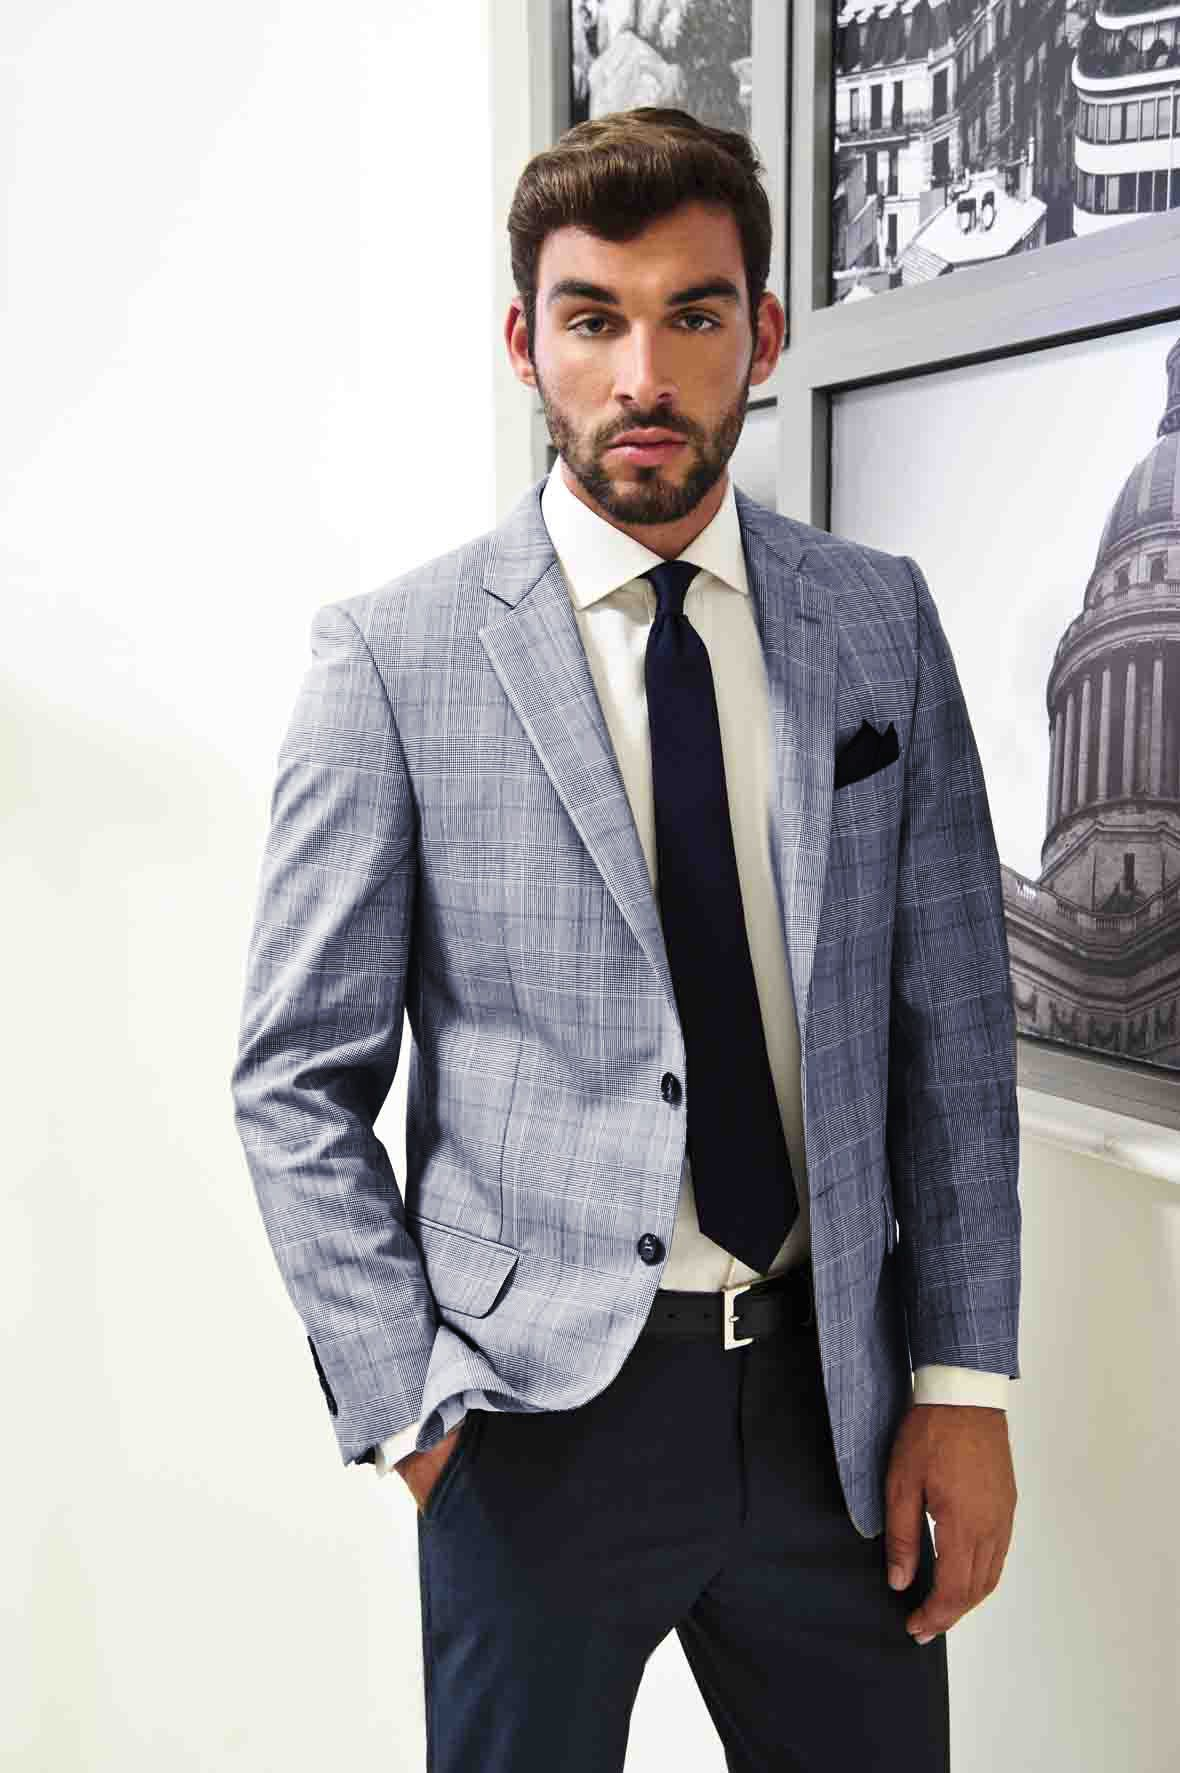 a067a8f8a1e Pierre Cardin suit collection. Pierre Cardin suits are classic and elegant.  It is suitable to all men who loves classic looks